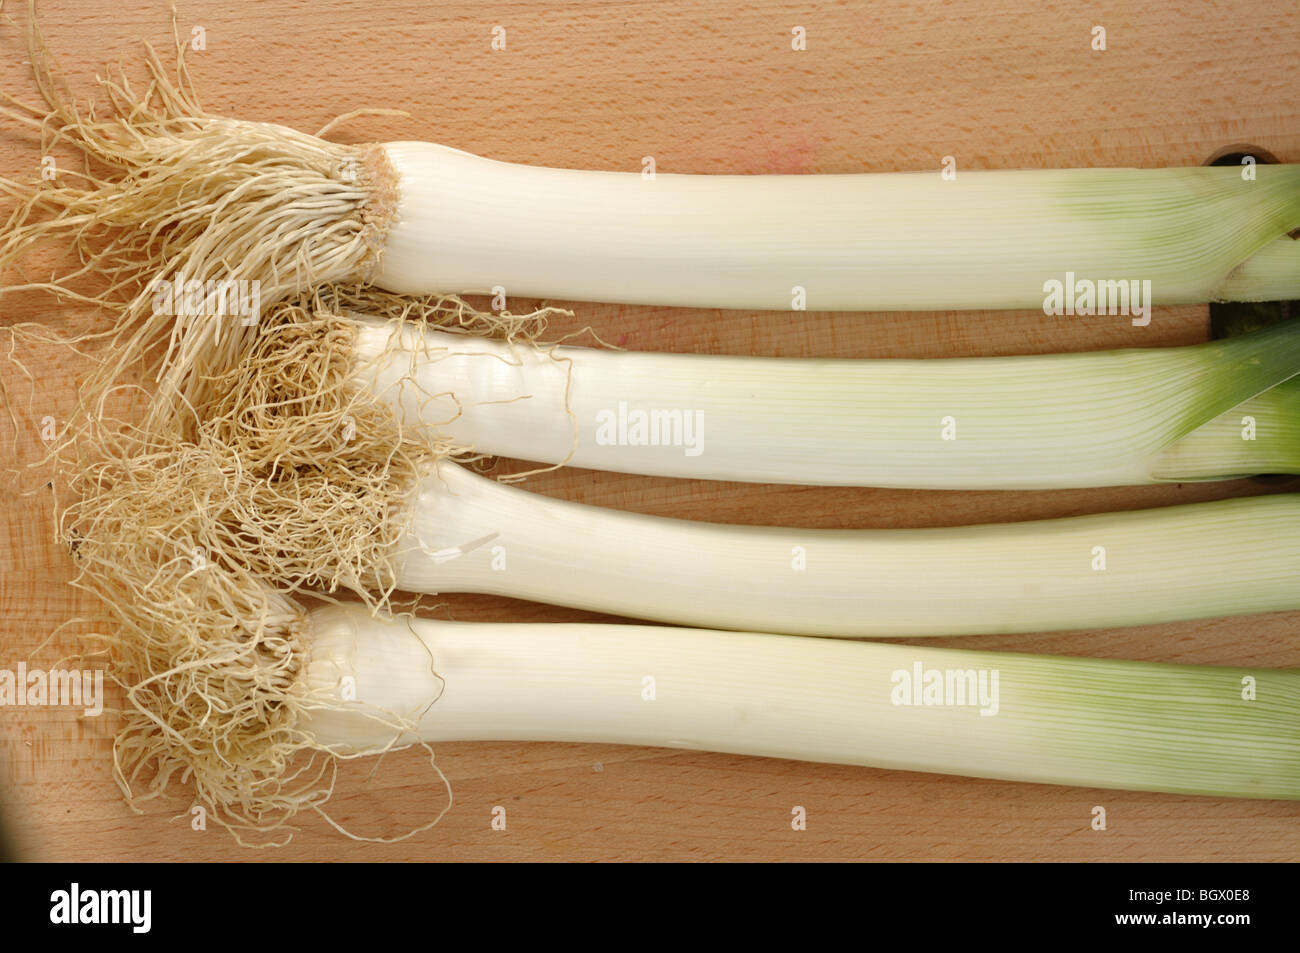 Fresh leek with the roots - Stock Image